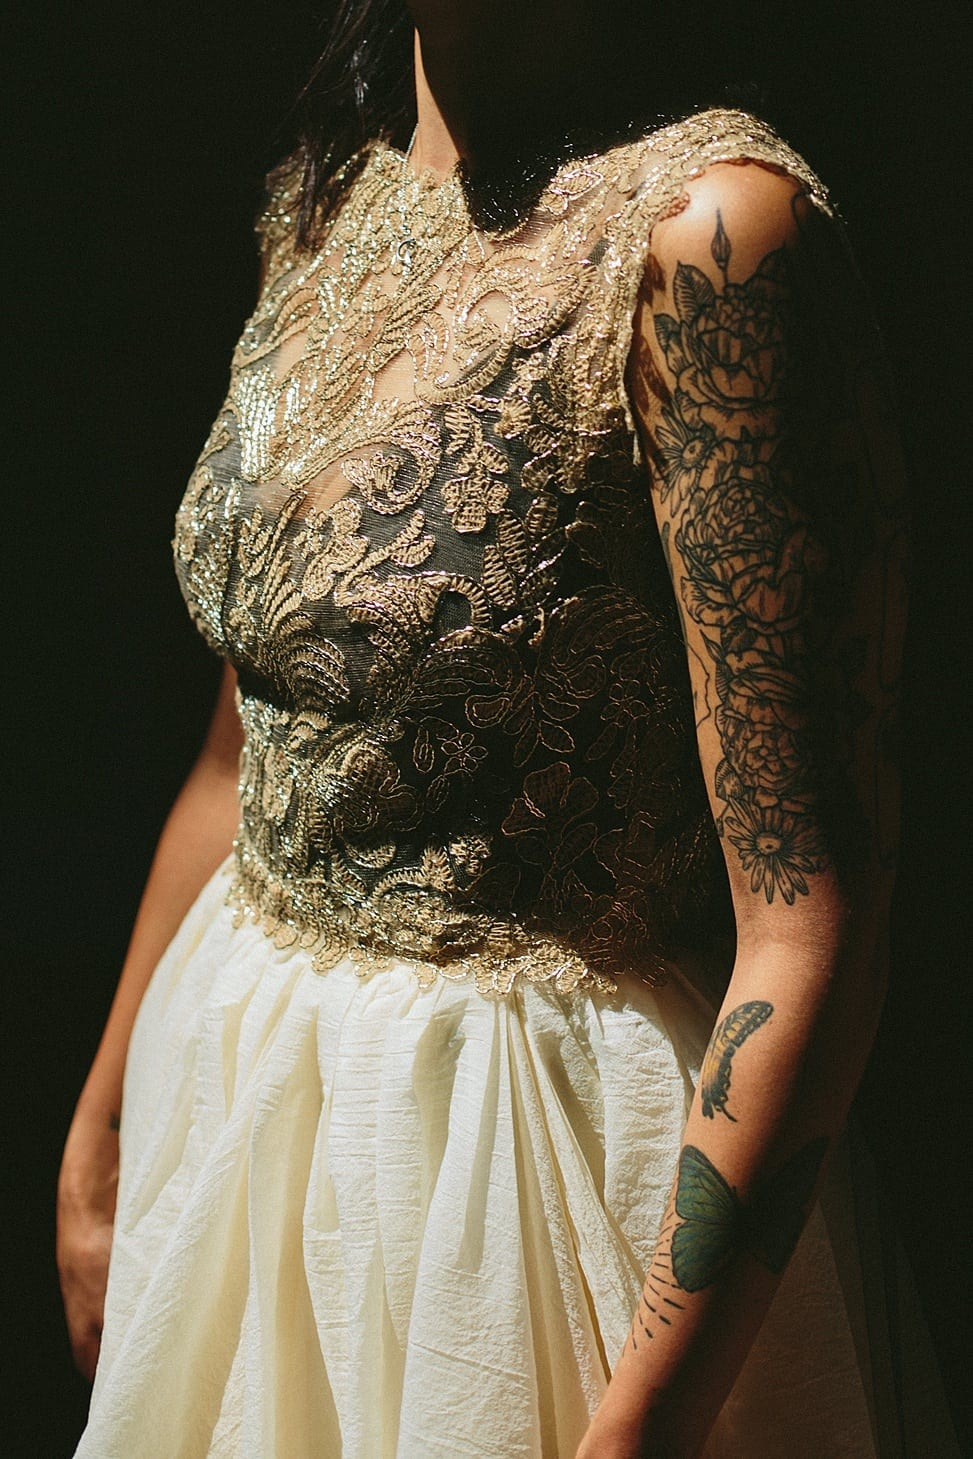 Winter wedding ideas for a medium close up of bodice of woman wearing gold and white dress